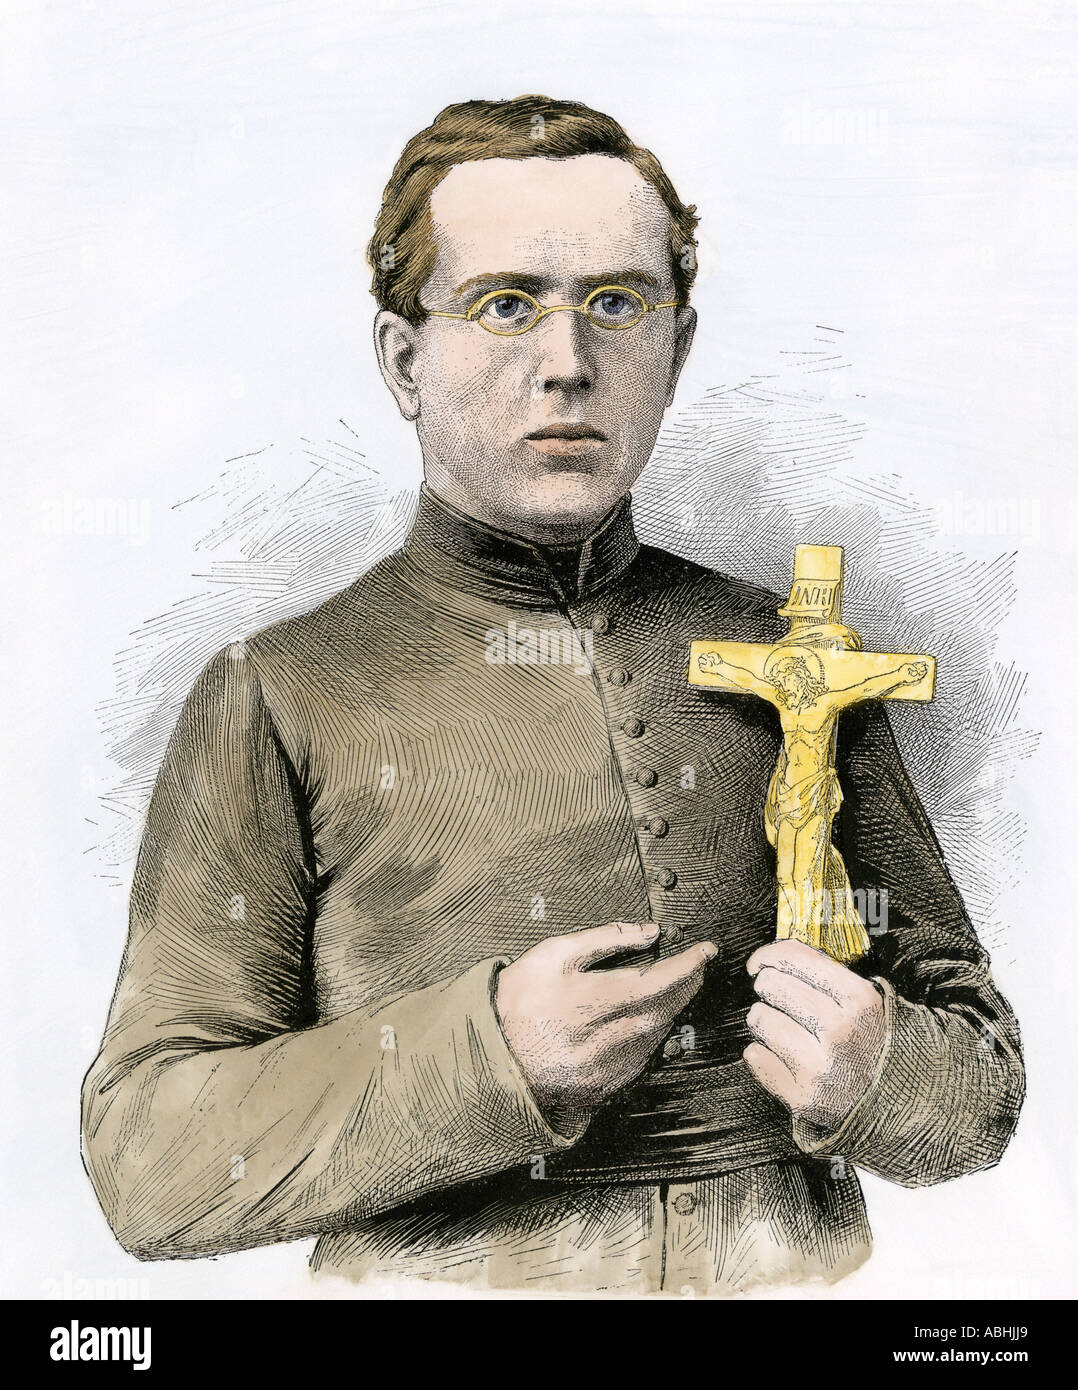 Joseph De Veuster aka Father Damien Catholic missionary to the leper colony in Hawaii 1800s. Hand-colored woodcut - Stock Image